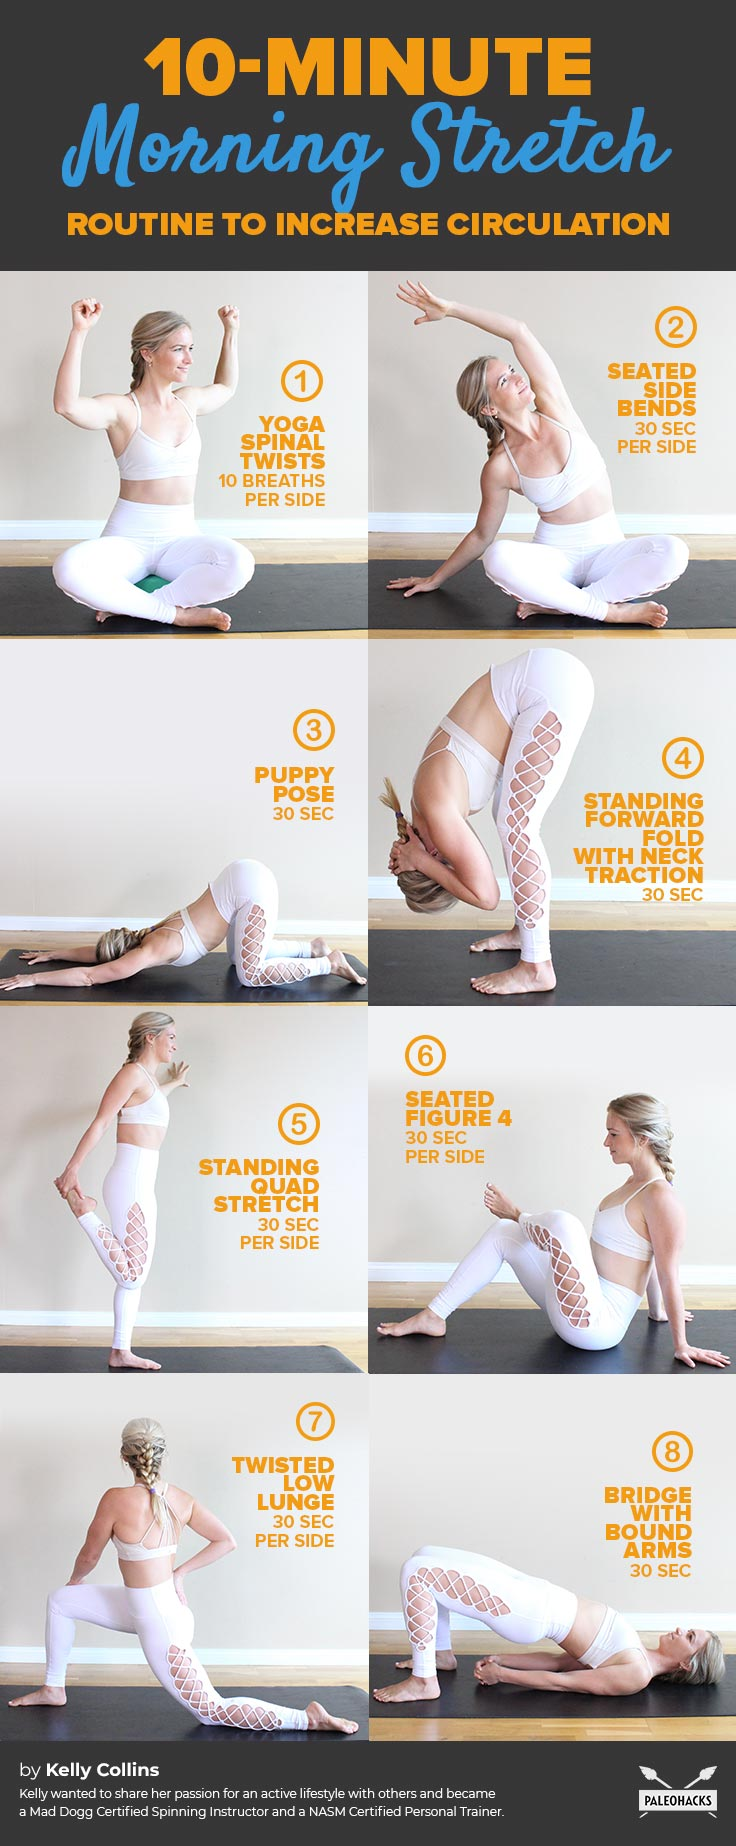 10-Minute-Morning-Stretch-Routine-to-Increase-Circulation-infog2.jpg